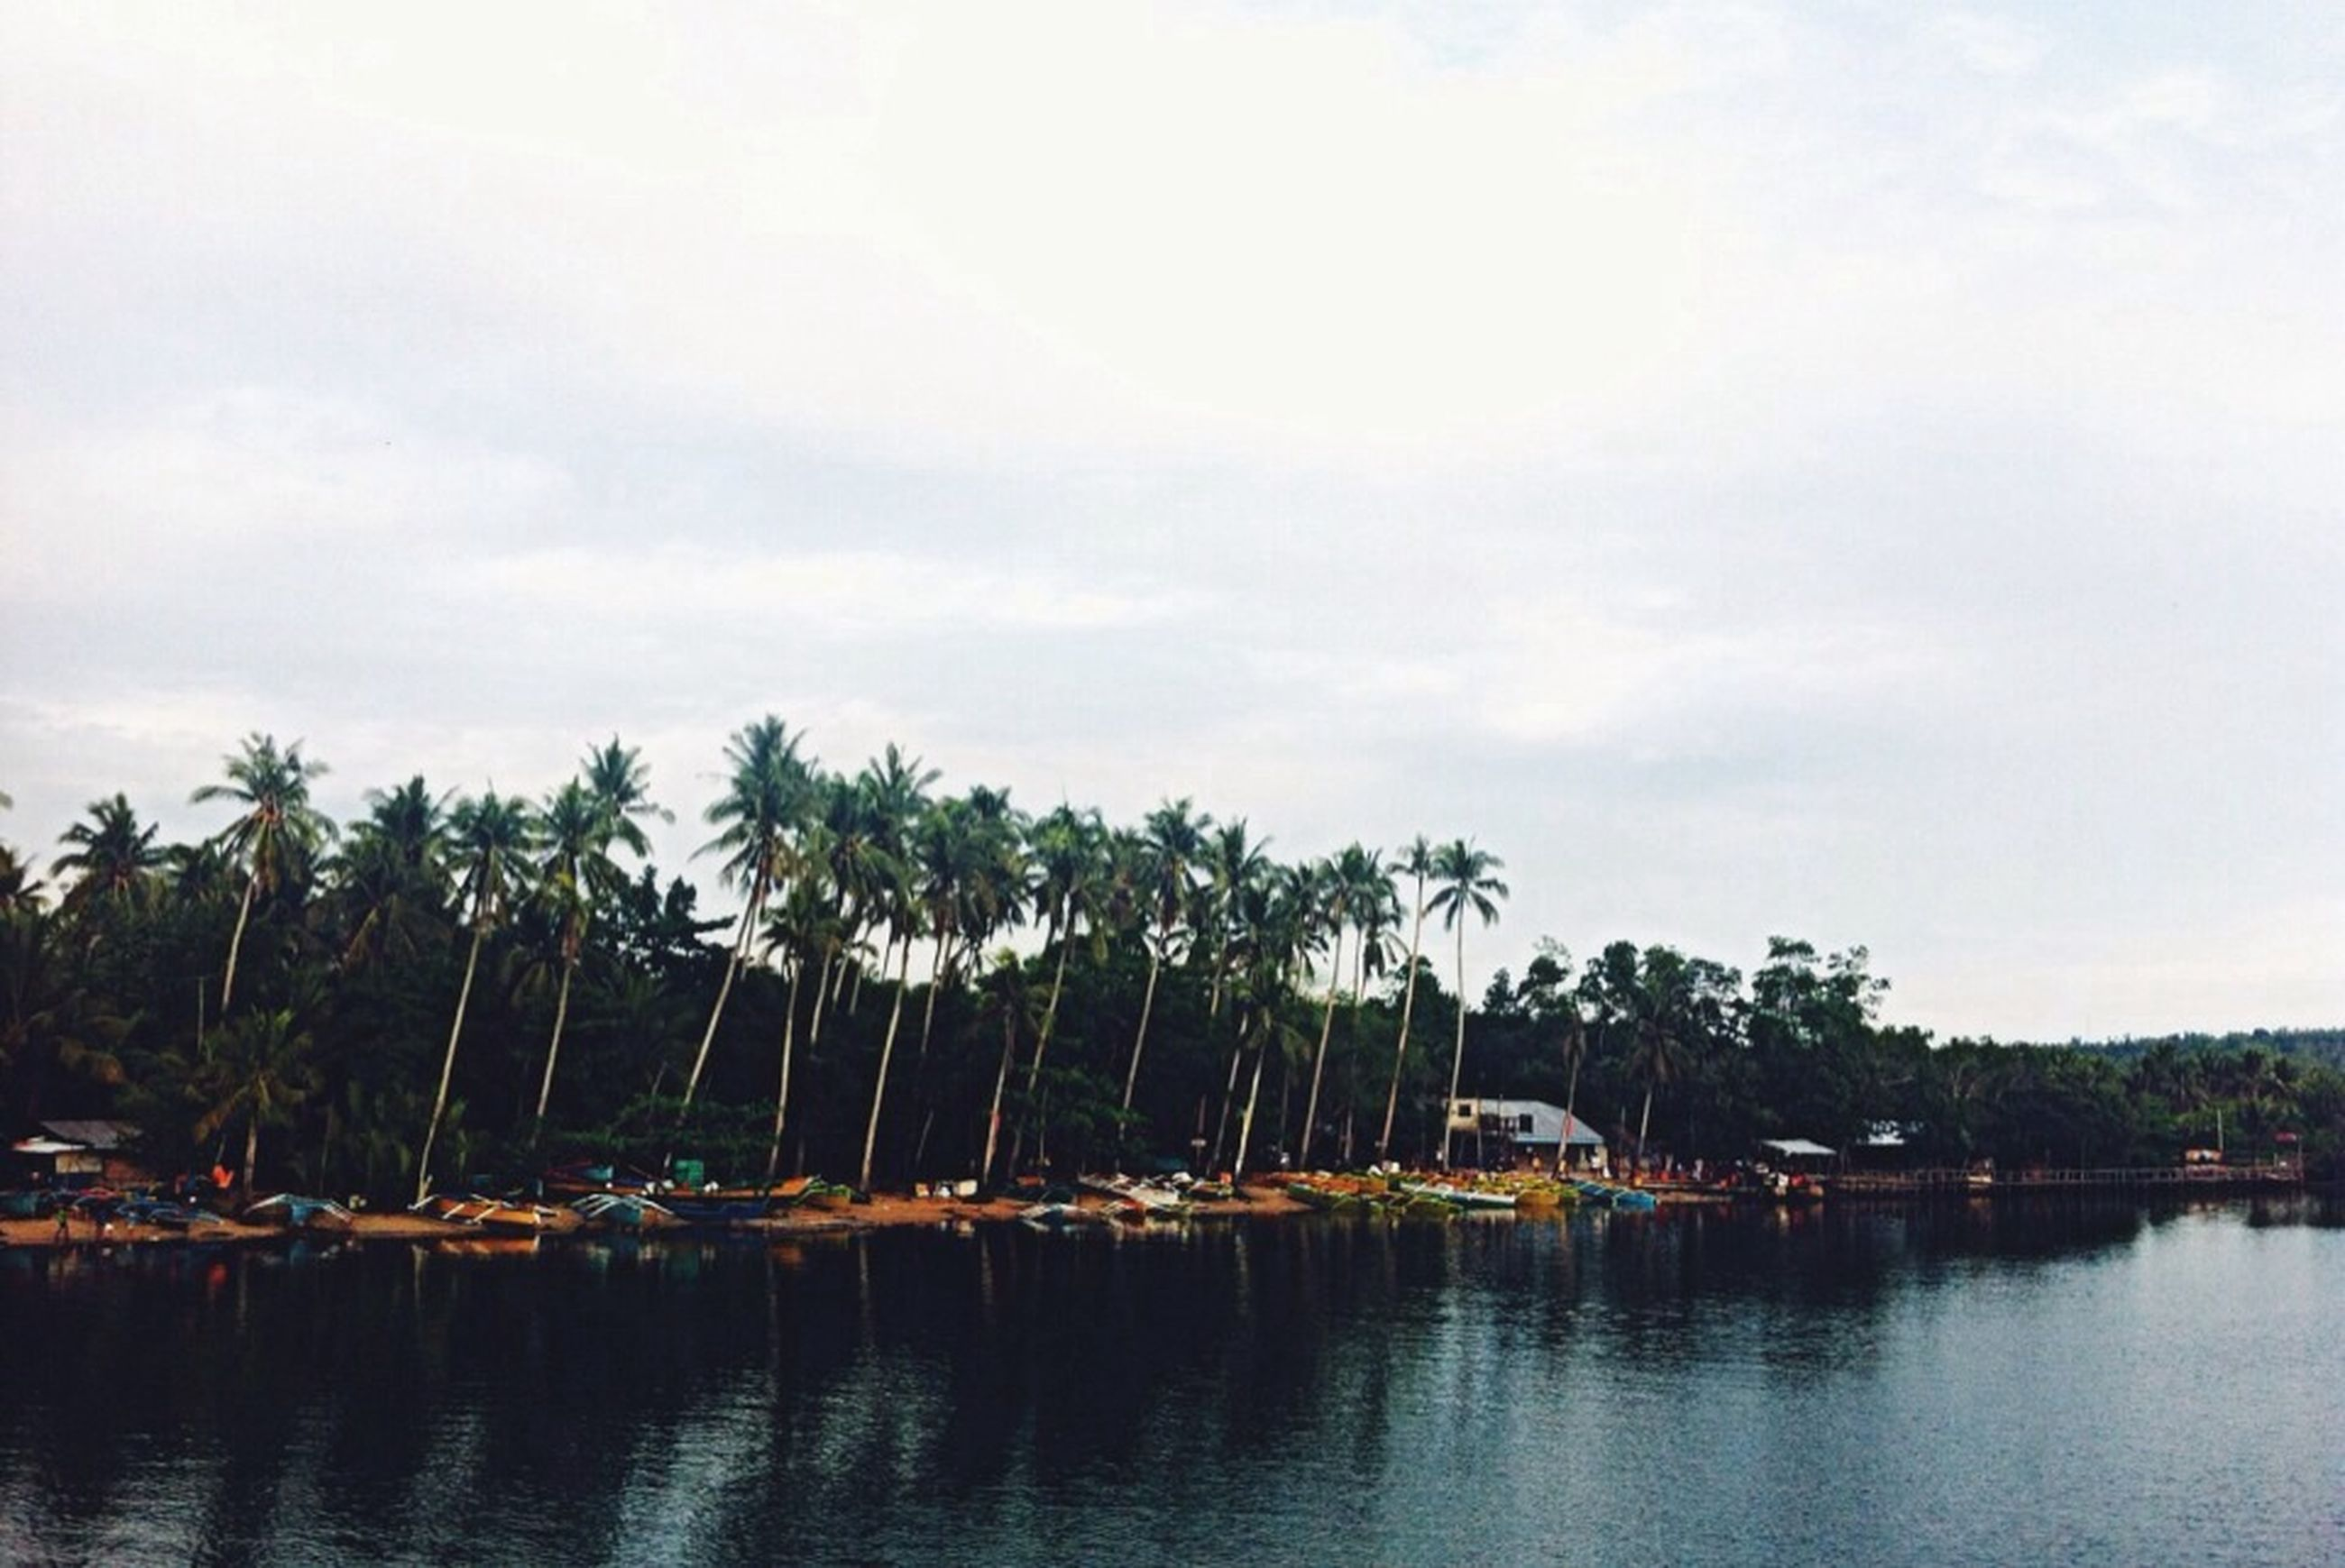 water, tree, sky, waterfront, nautical vessel, lake, transportation, boat, river, mode of transport, reflection, moored, tranquility, tranquil scene, cloud - sky, nature, built structure, palm tree, scenics, architecture